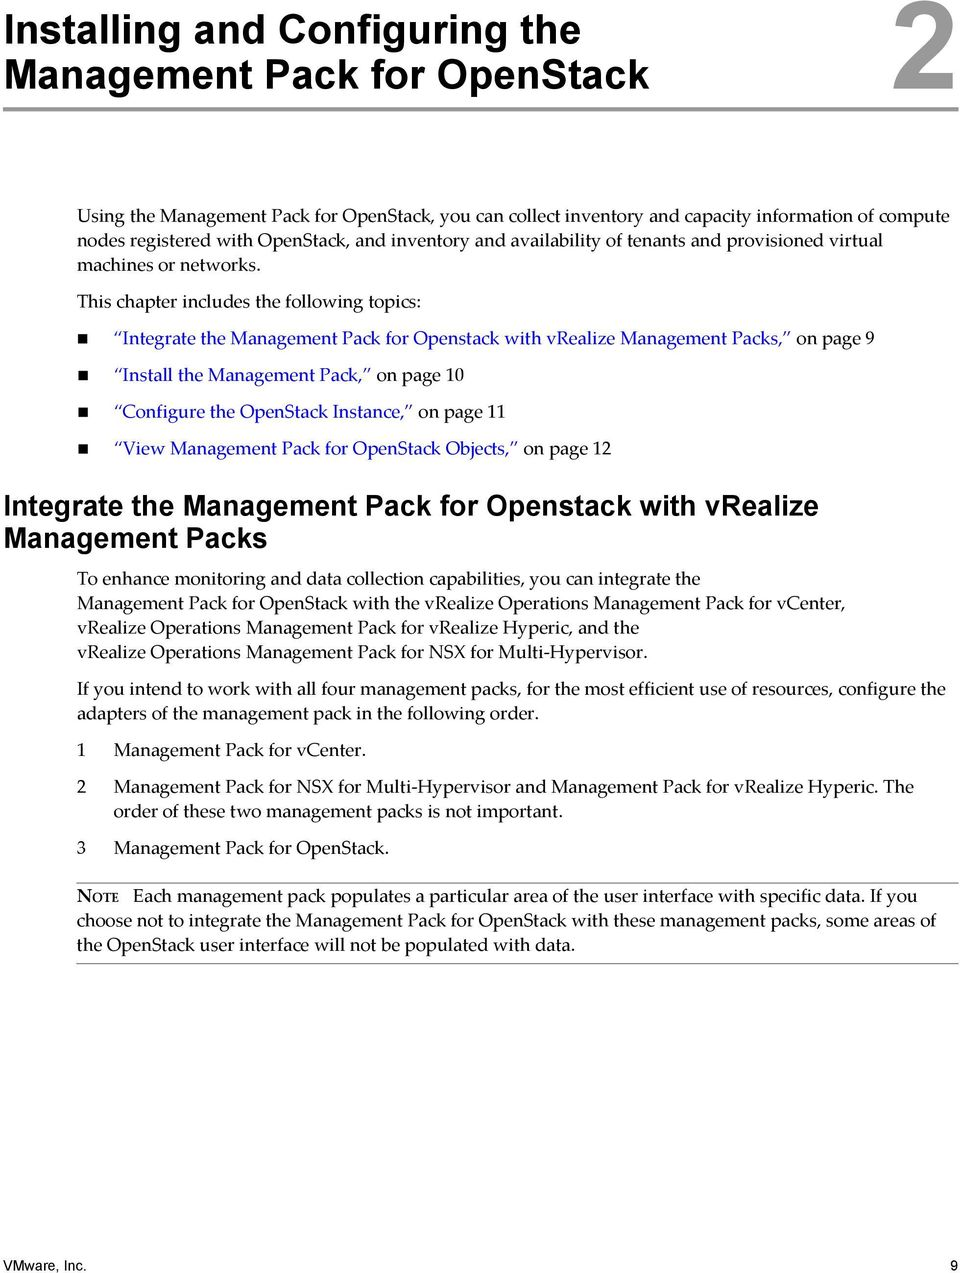 This chapter includes the following topics: Integrate the Management Pack for Openstack with vrealize Management Packs, on page 9 Install the Management Pack, on page 10 Configure the Instance, on